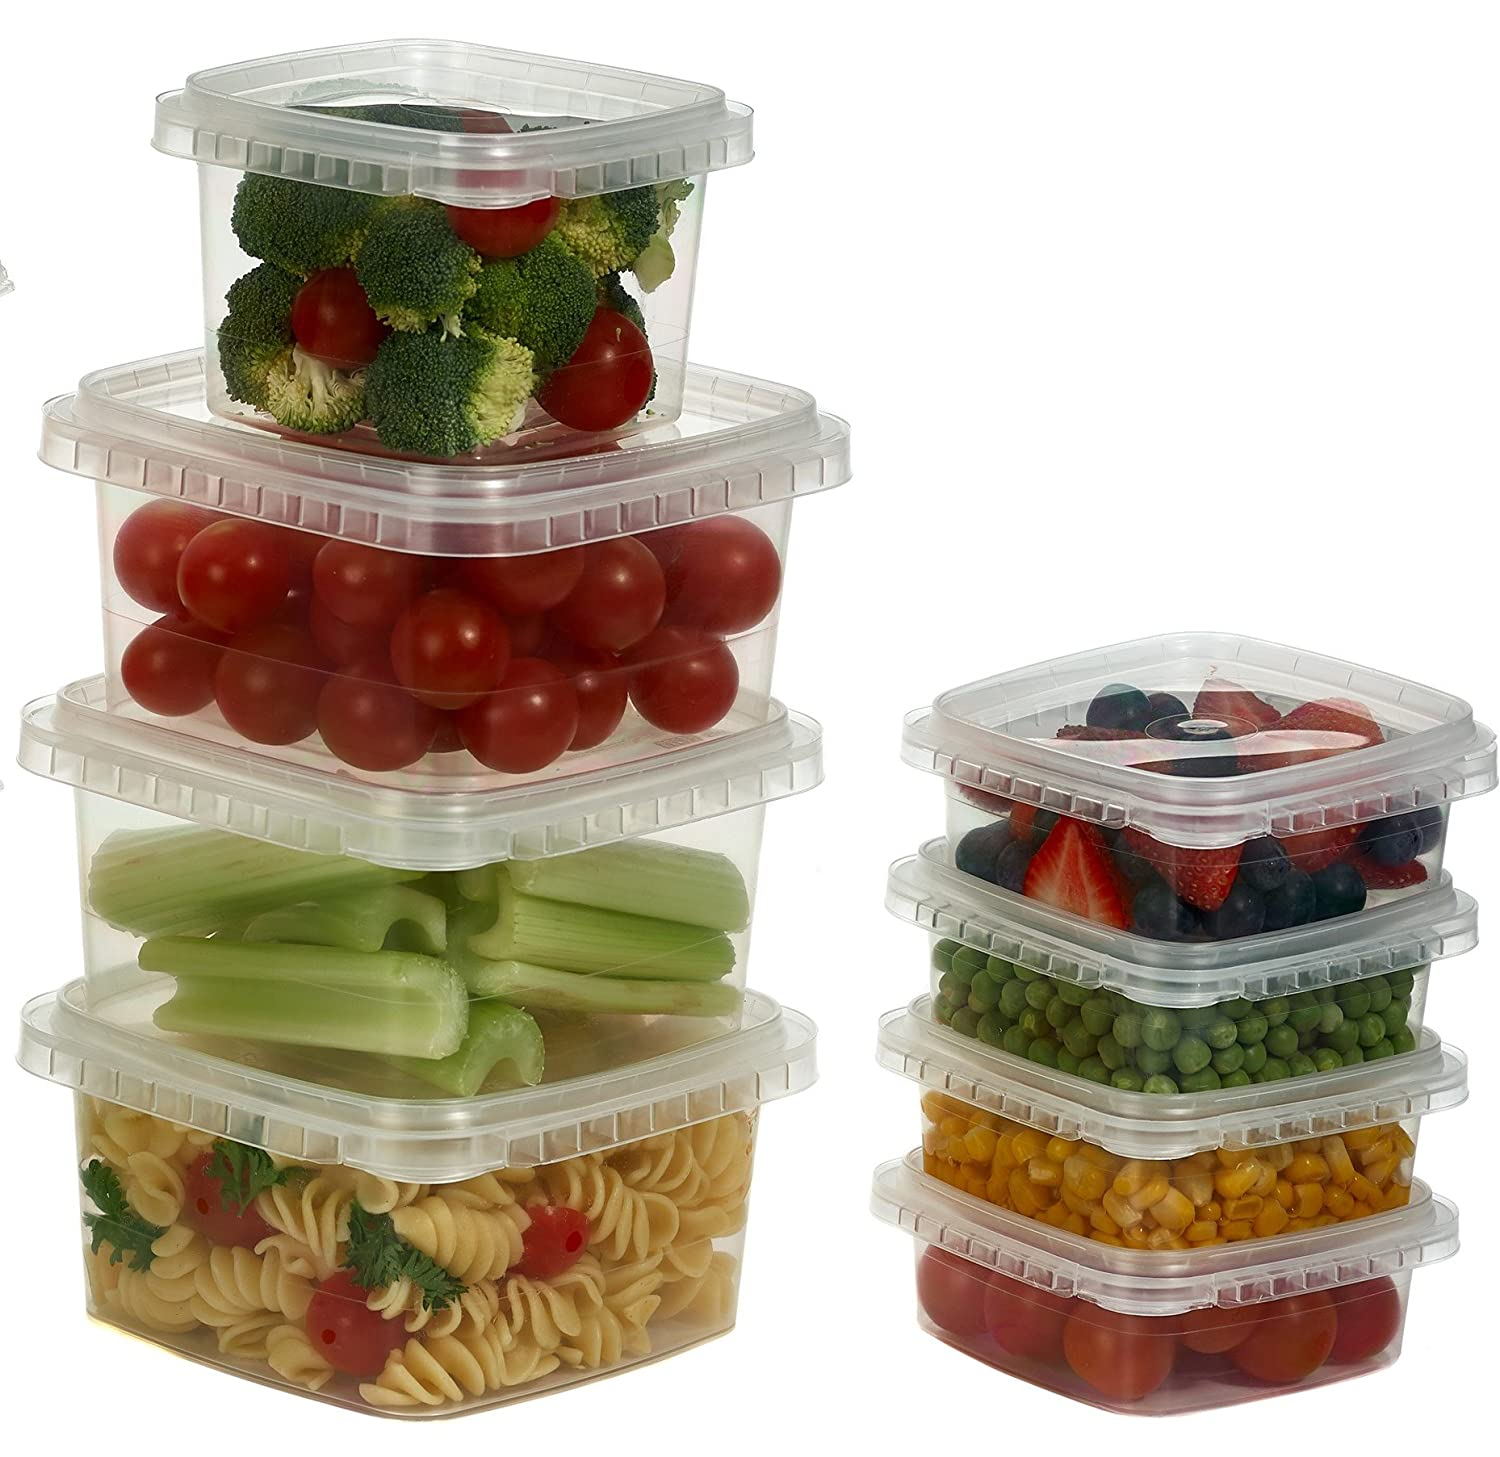 8 oz. Clear Deli Food Storage Containers With Lids Tamper evident security system and easy stackable and space saver shape Restaurant Take Out/Freezer microwave and dishwasher safe - 25 sets